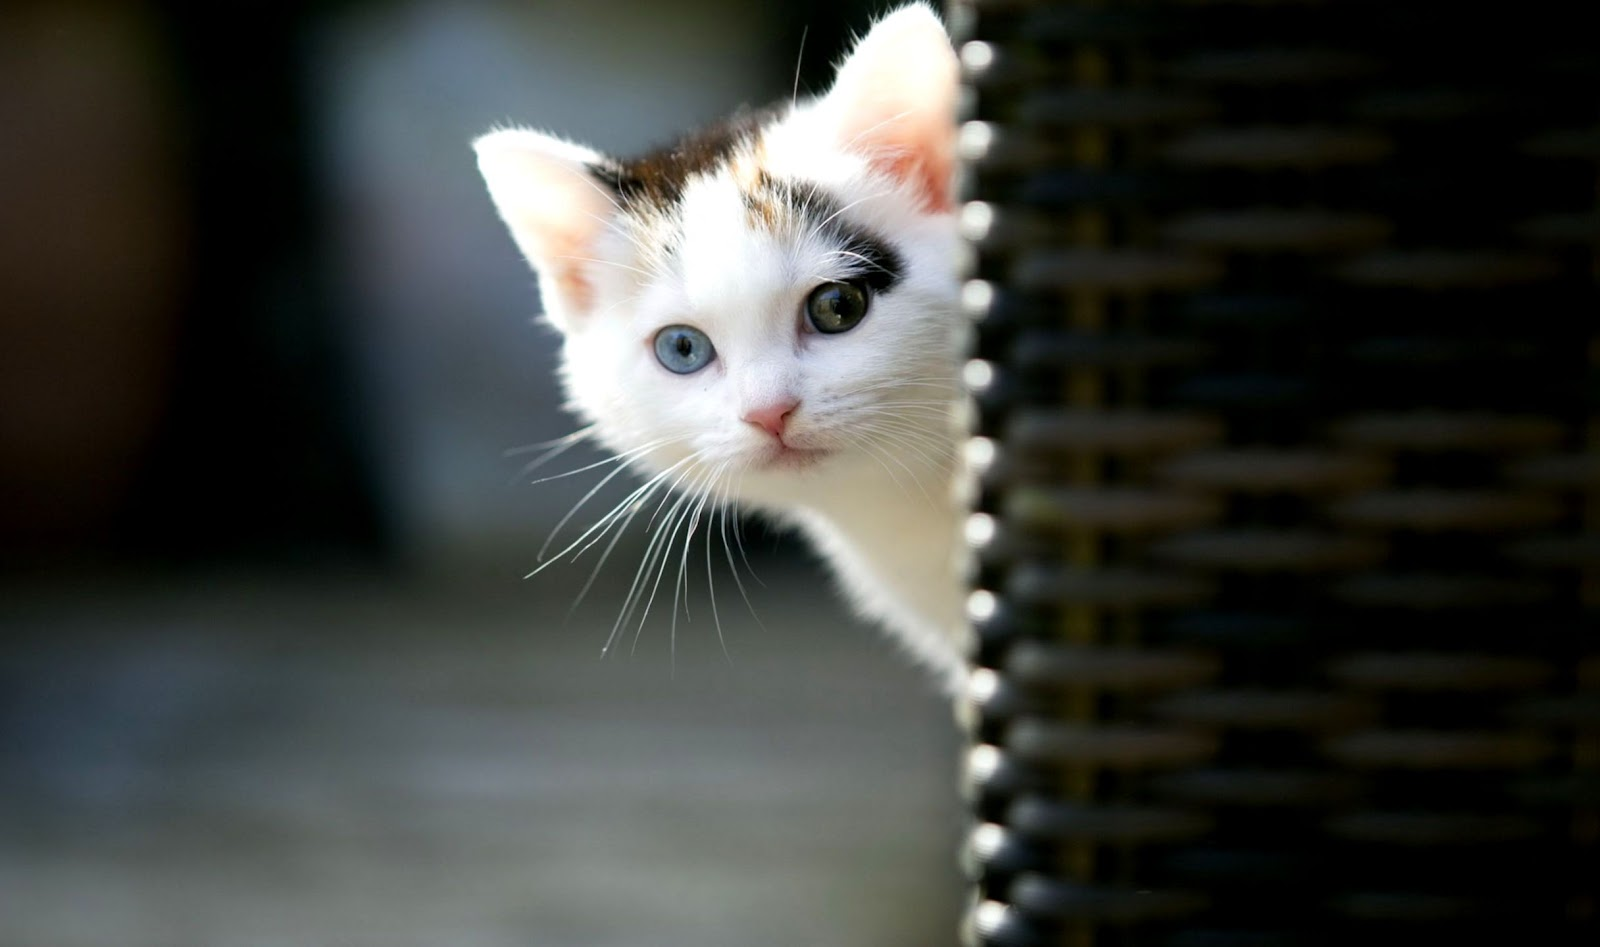 Hd Wallpapers Cat Cool Photos